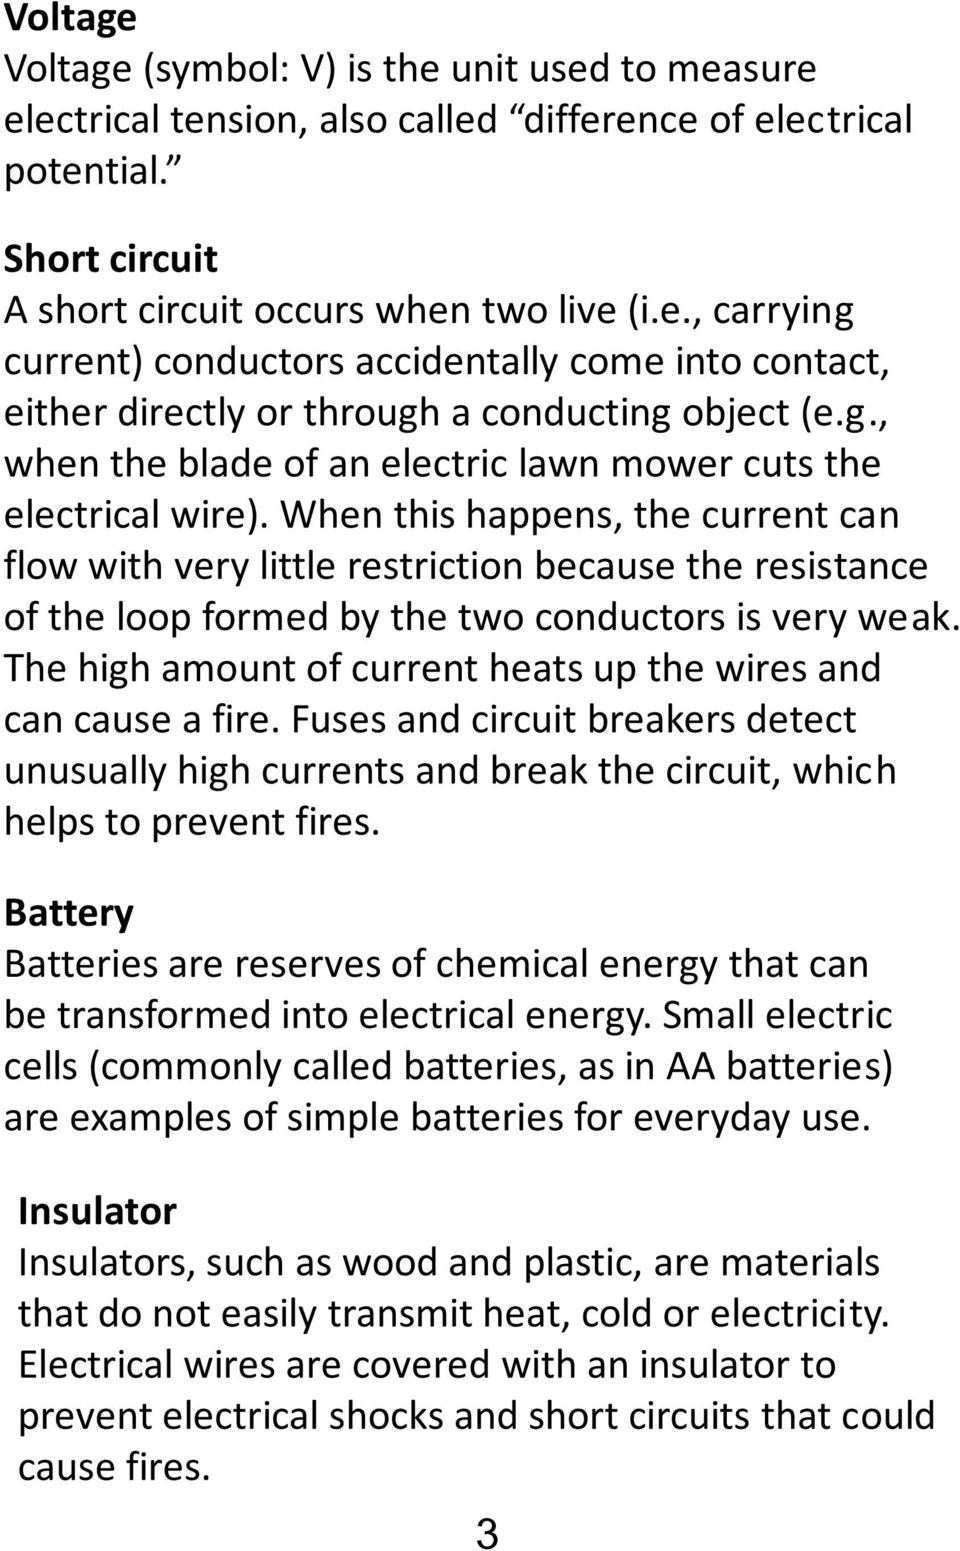 Electricity Unit Science And Technolgy Cycle 3 Name Group Teacher Cold Circuit When This Happens The Current Can Flow With Very Little Restriction Because Resistance Of